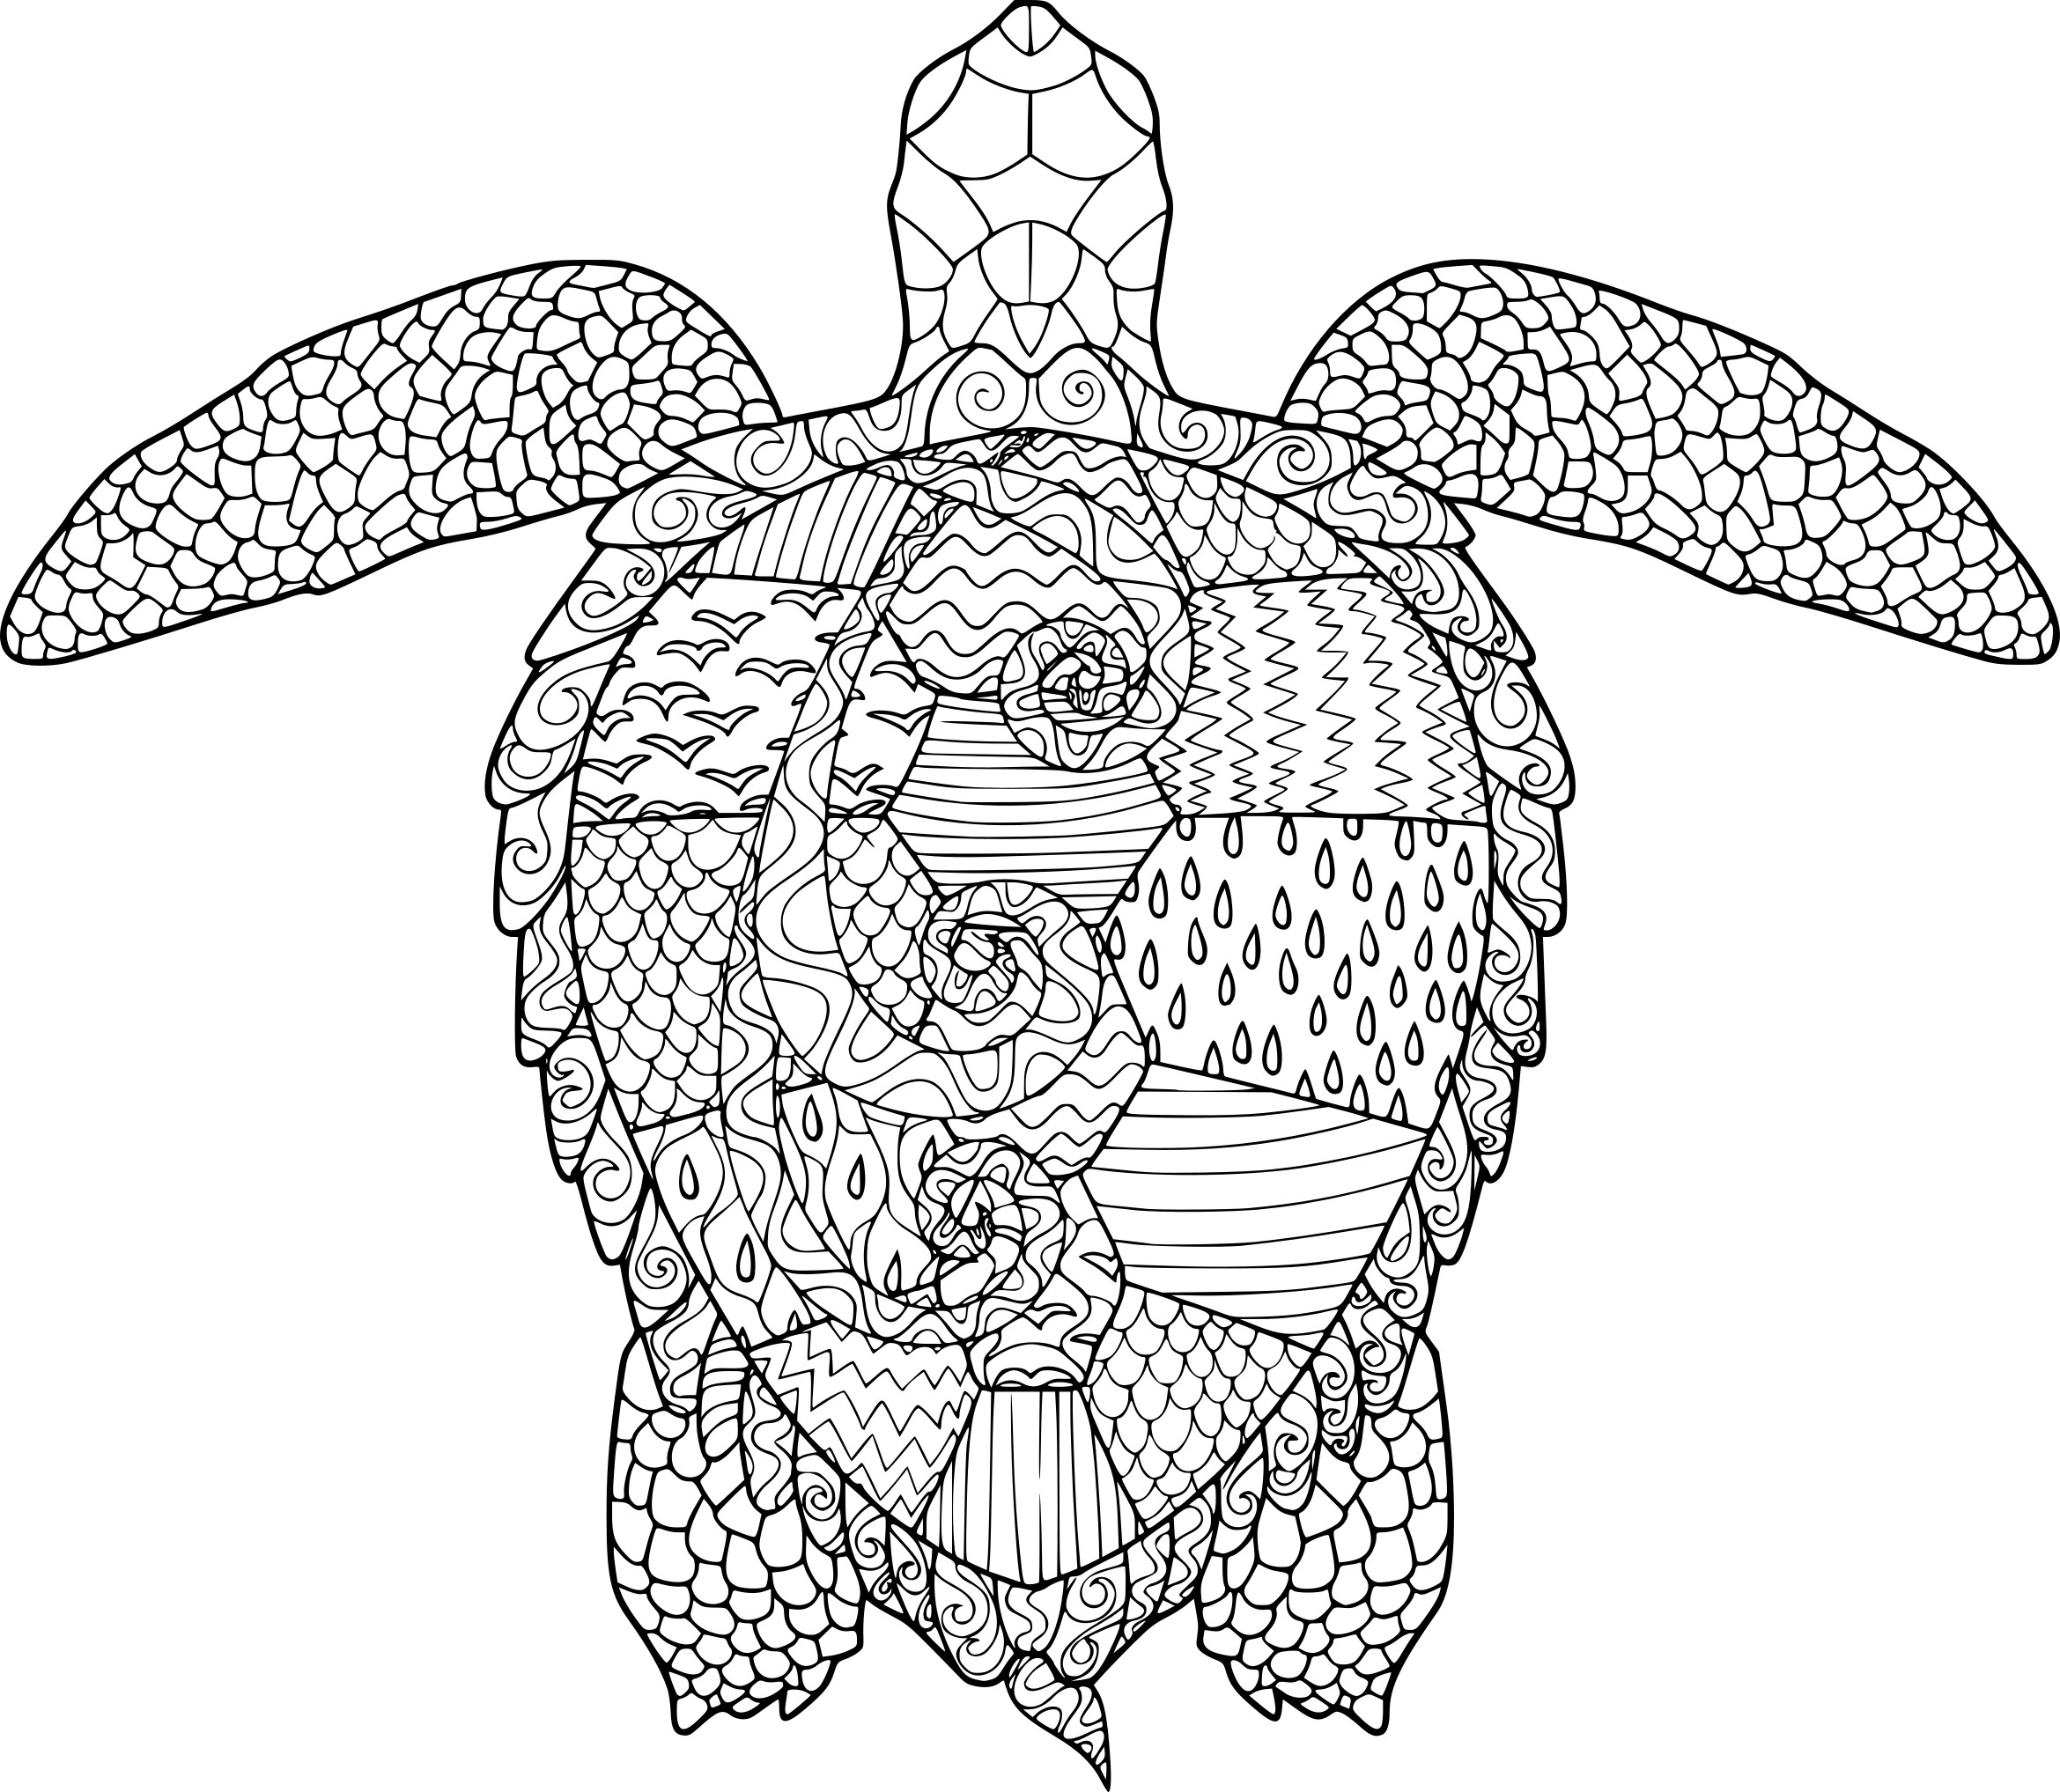 Coloriage Anti Stress Tortue